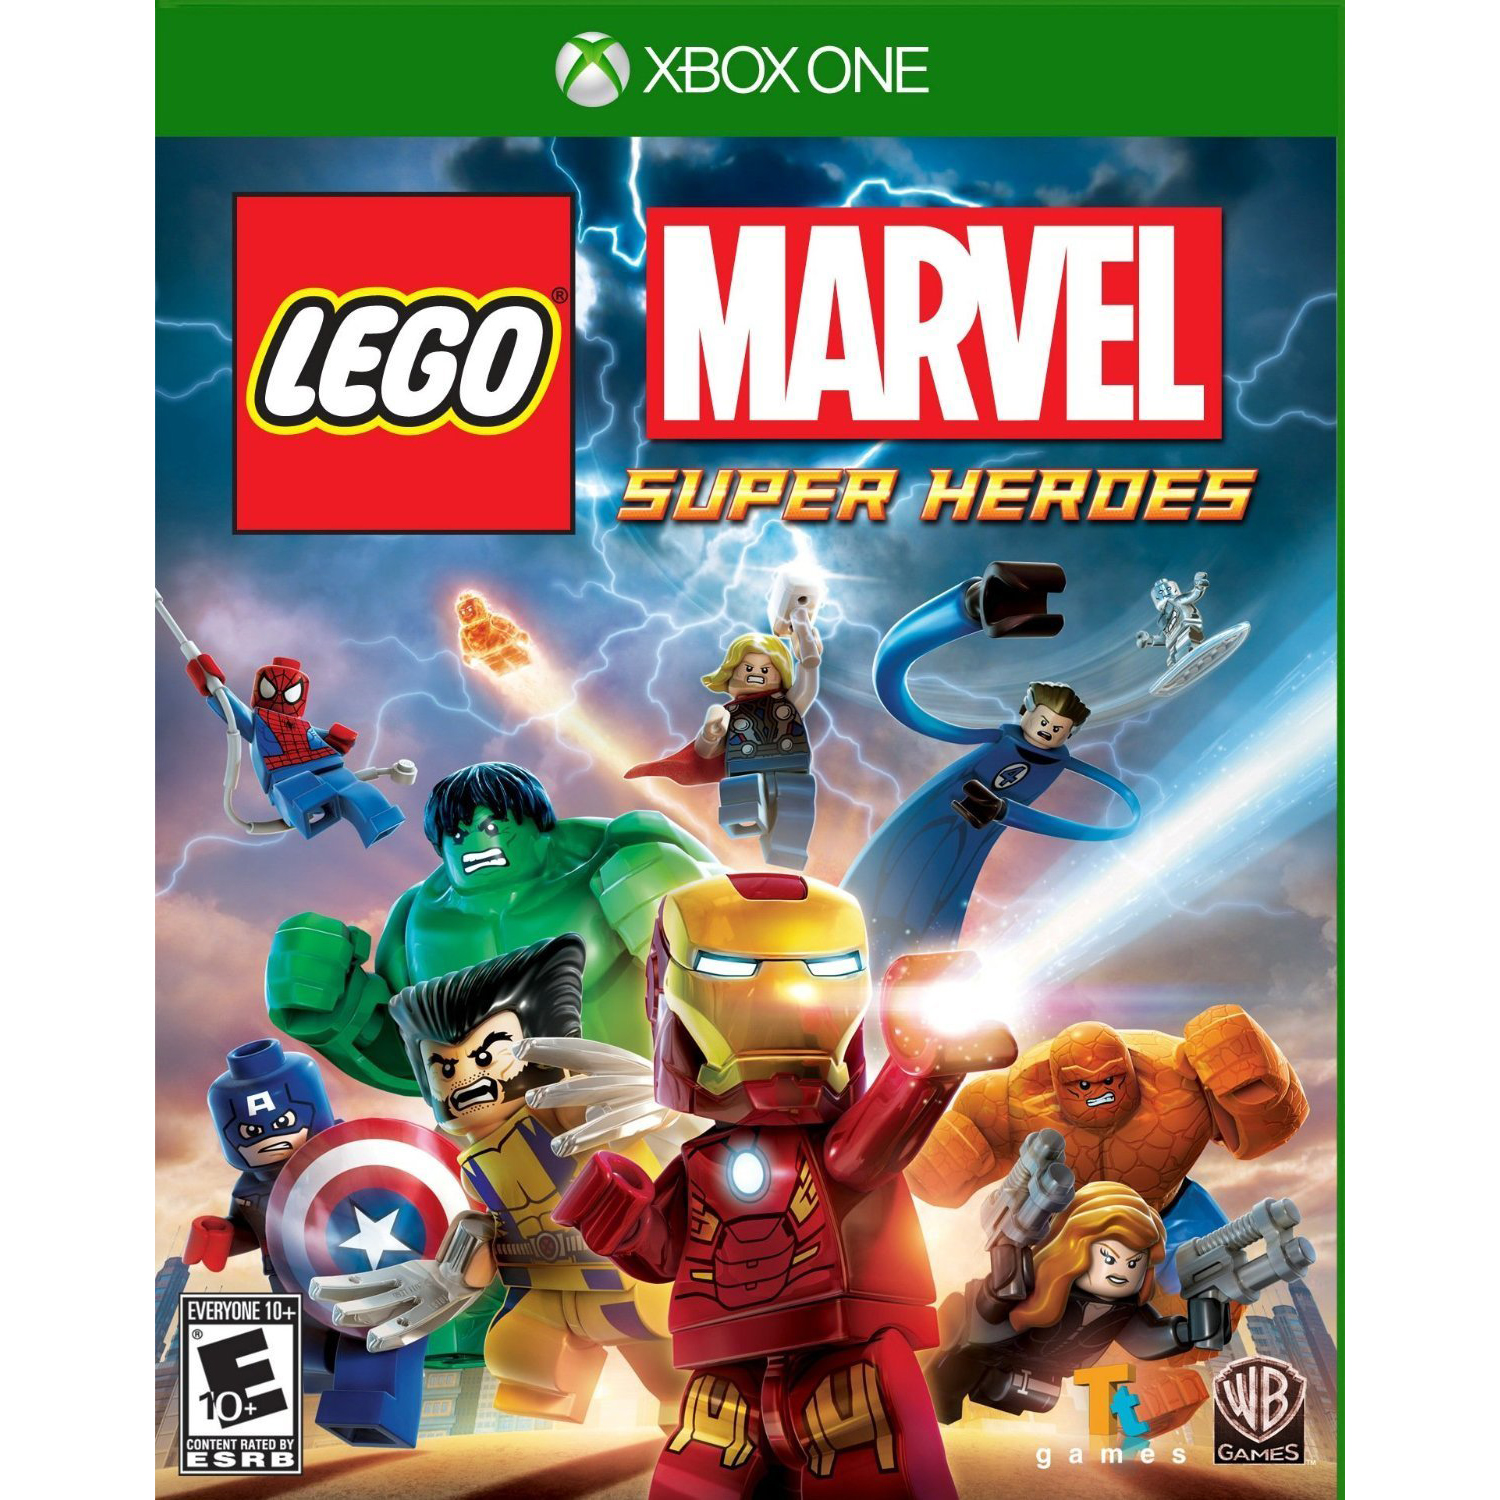 Lego Marvel Super Heroes - Microsoft Xbox One Video Game - New Sealed Disc